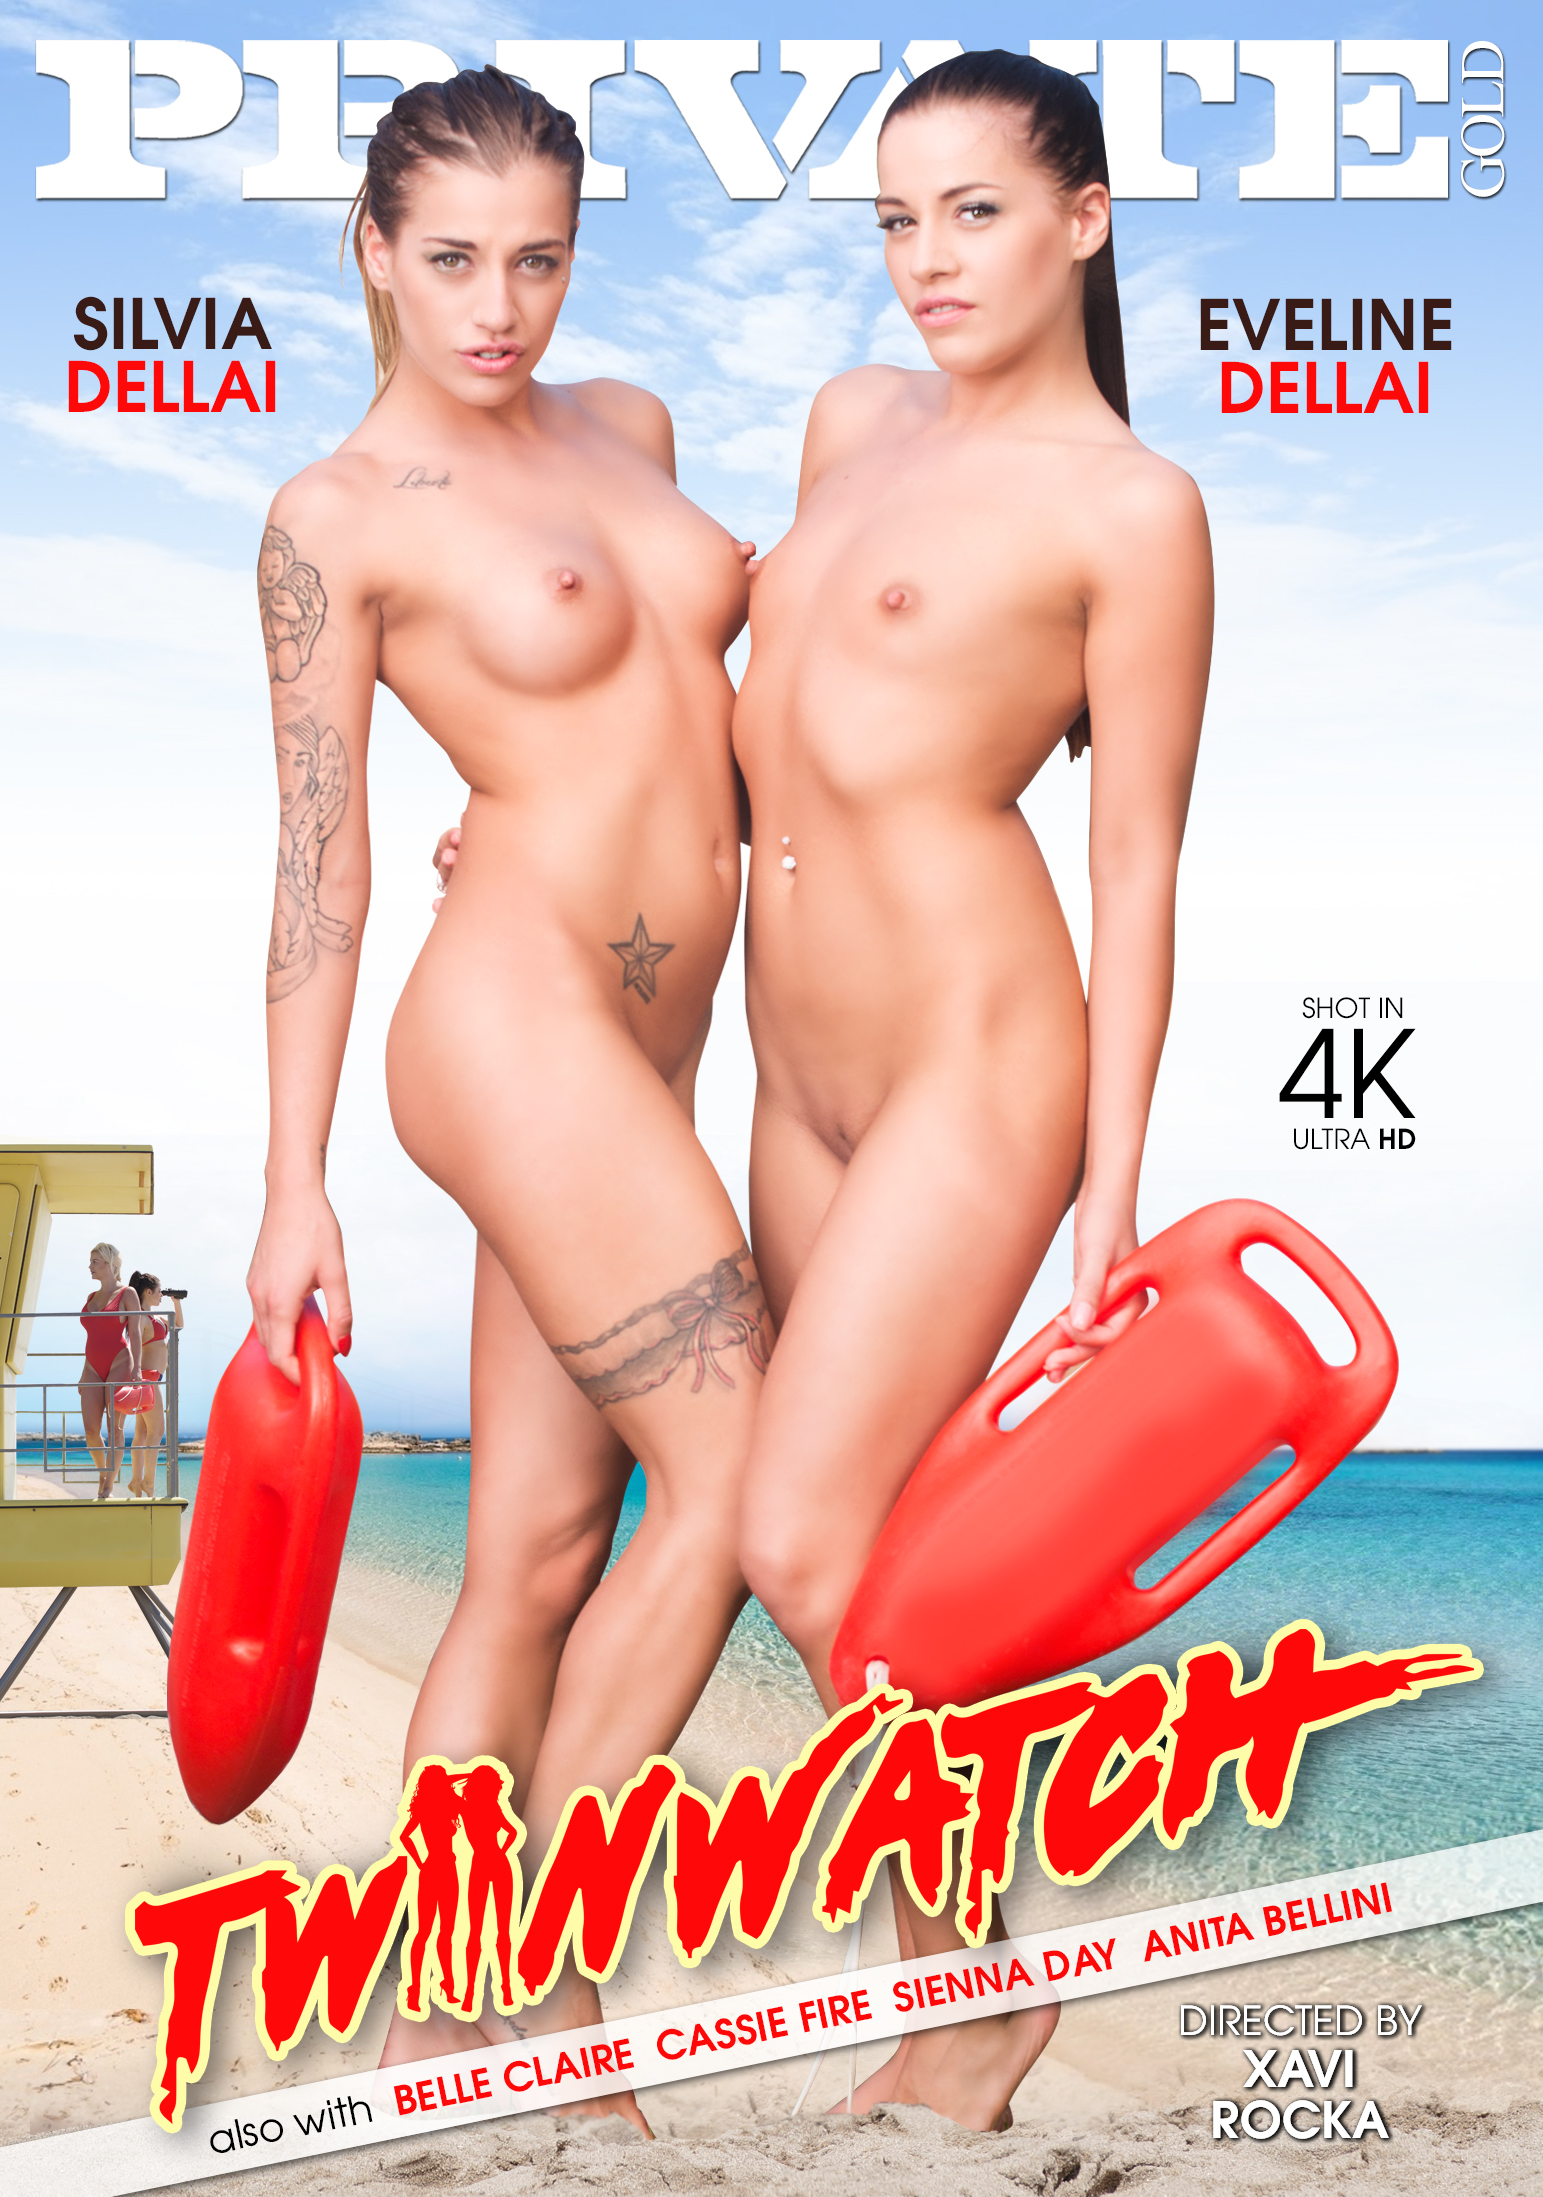 Twinwatch Porn Video Art